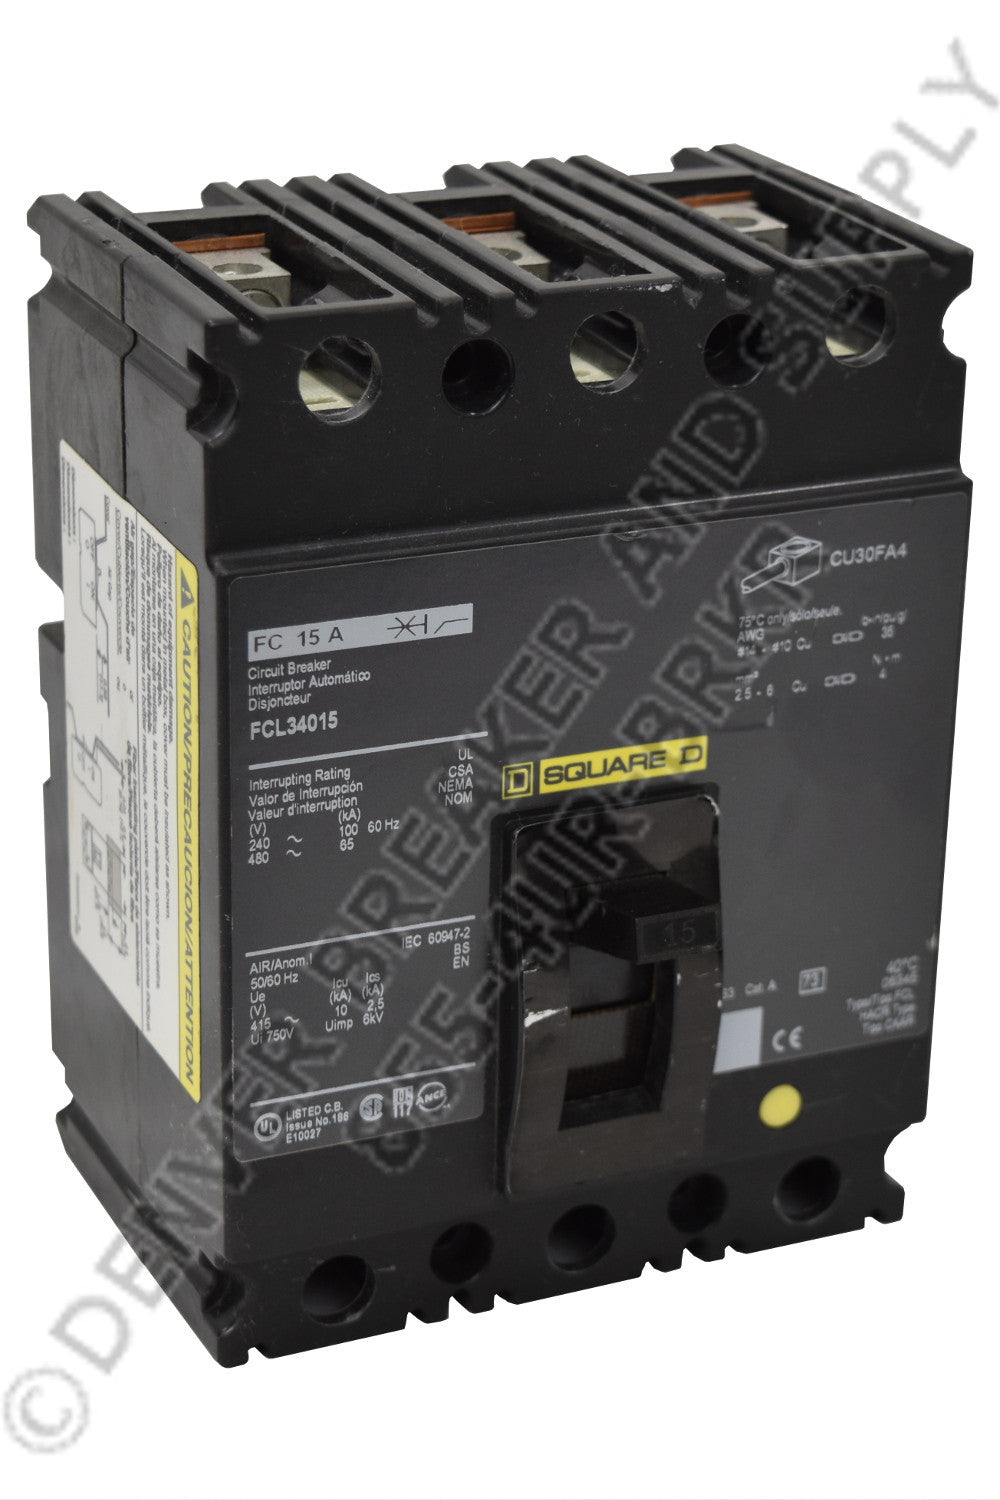 Square D FCP24035TF Circuit Breakers